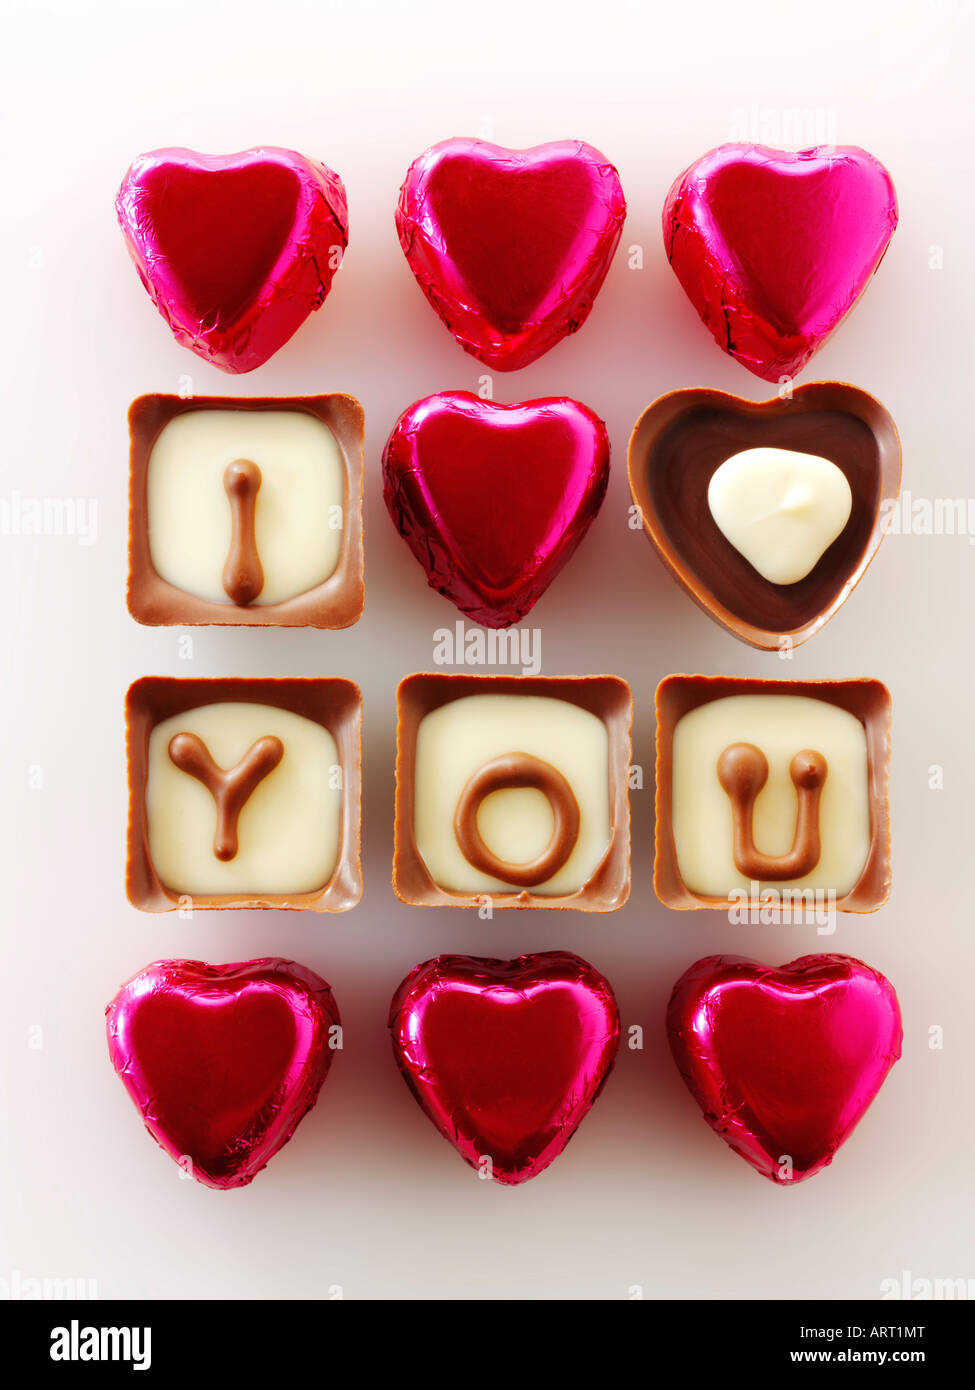 I Love You written in chocolates with red heart shaped chocolates.